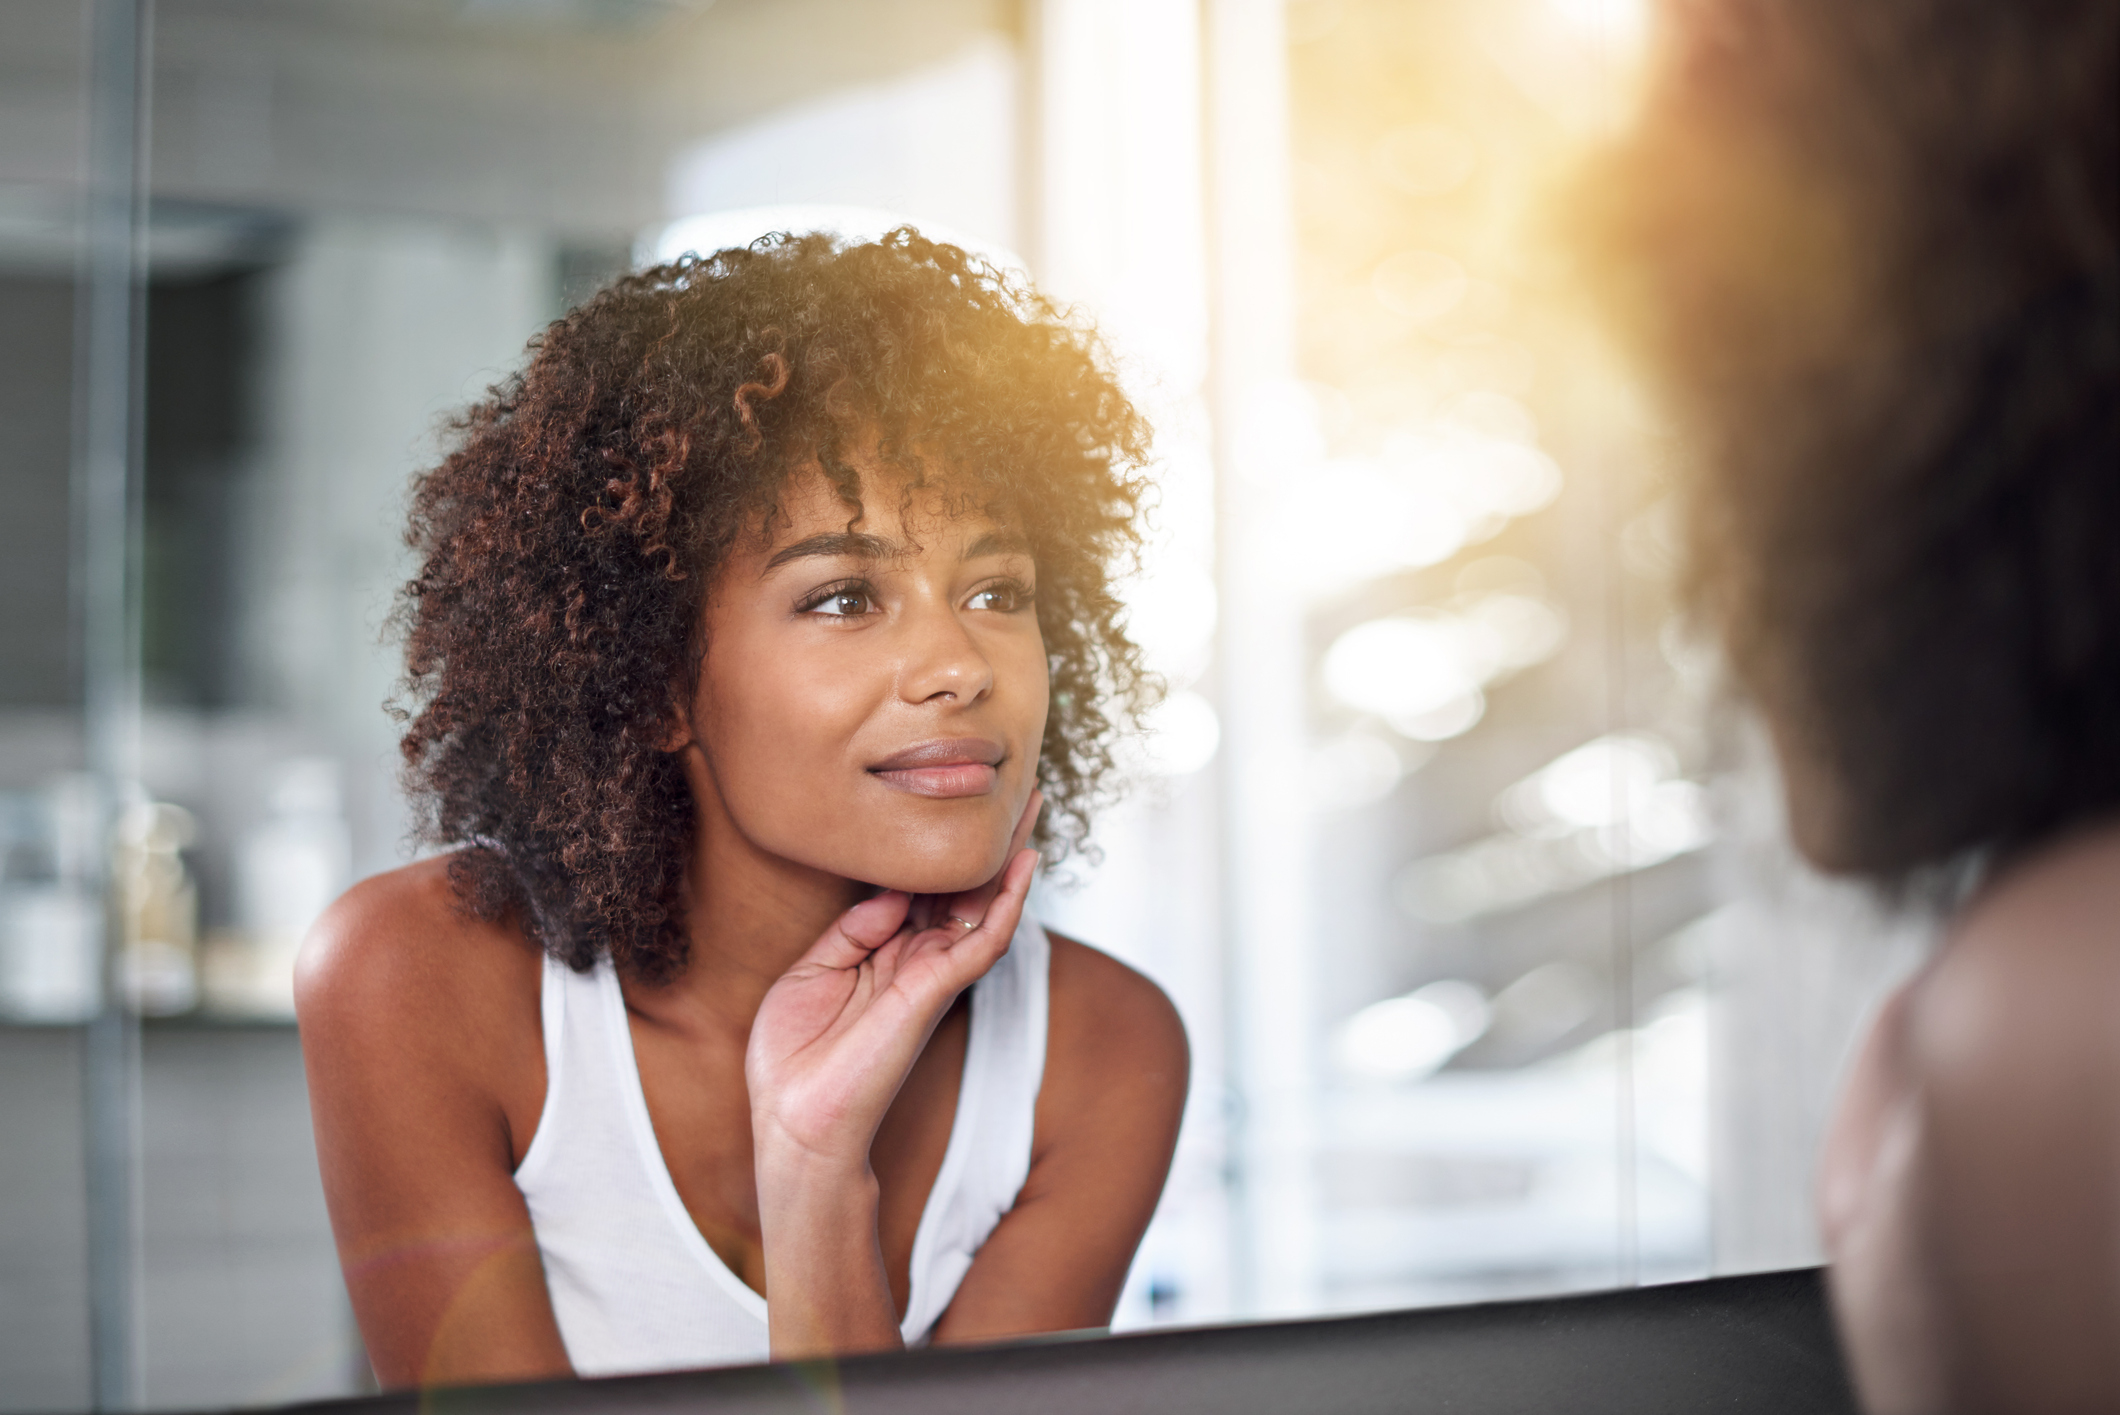 woman in mirror with glowing skin